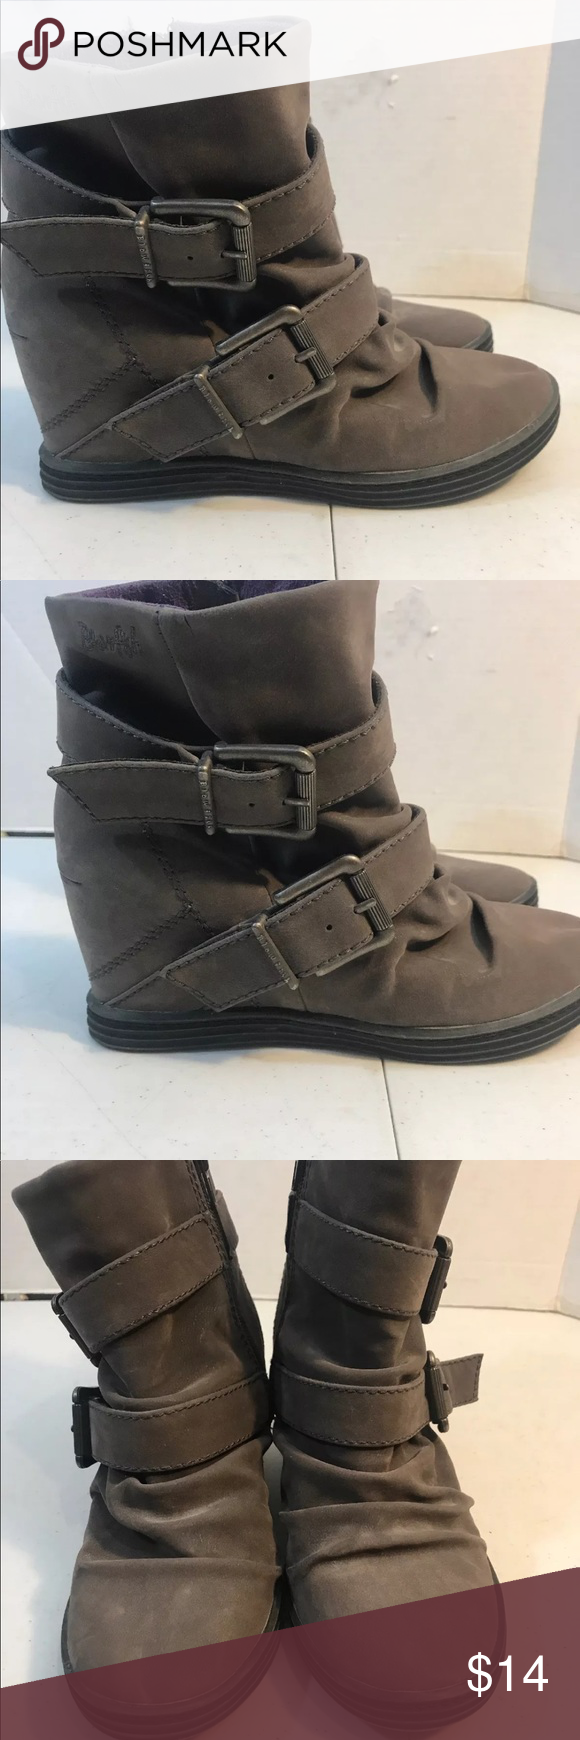 40533e623b3f Blowfish Ankle Wedge Boots Size 7.5 gray Good used condition Blowfish Shoes  Ankle Boots   Booties